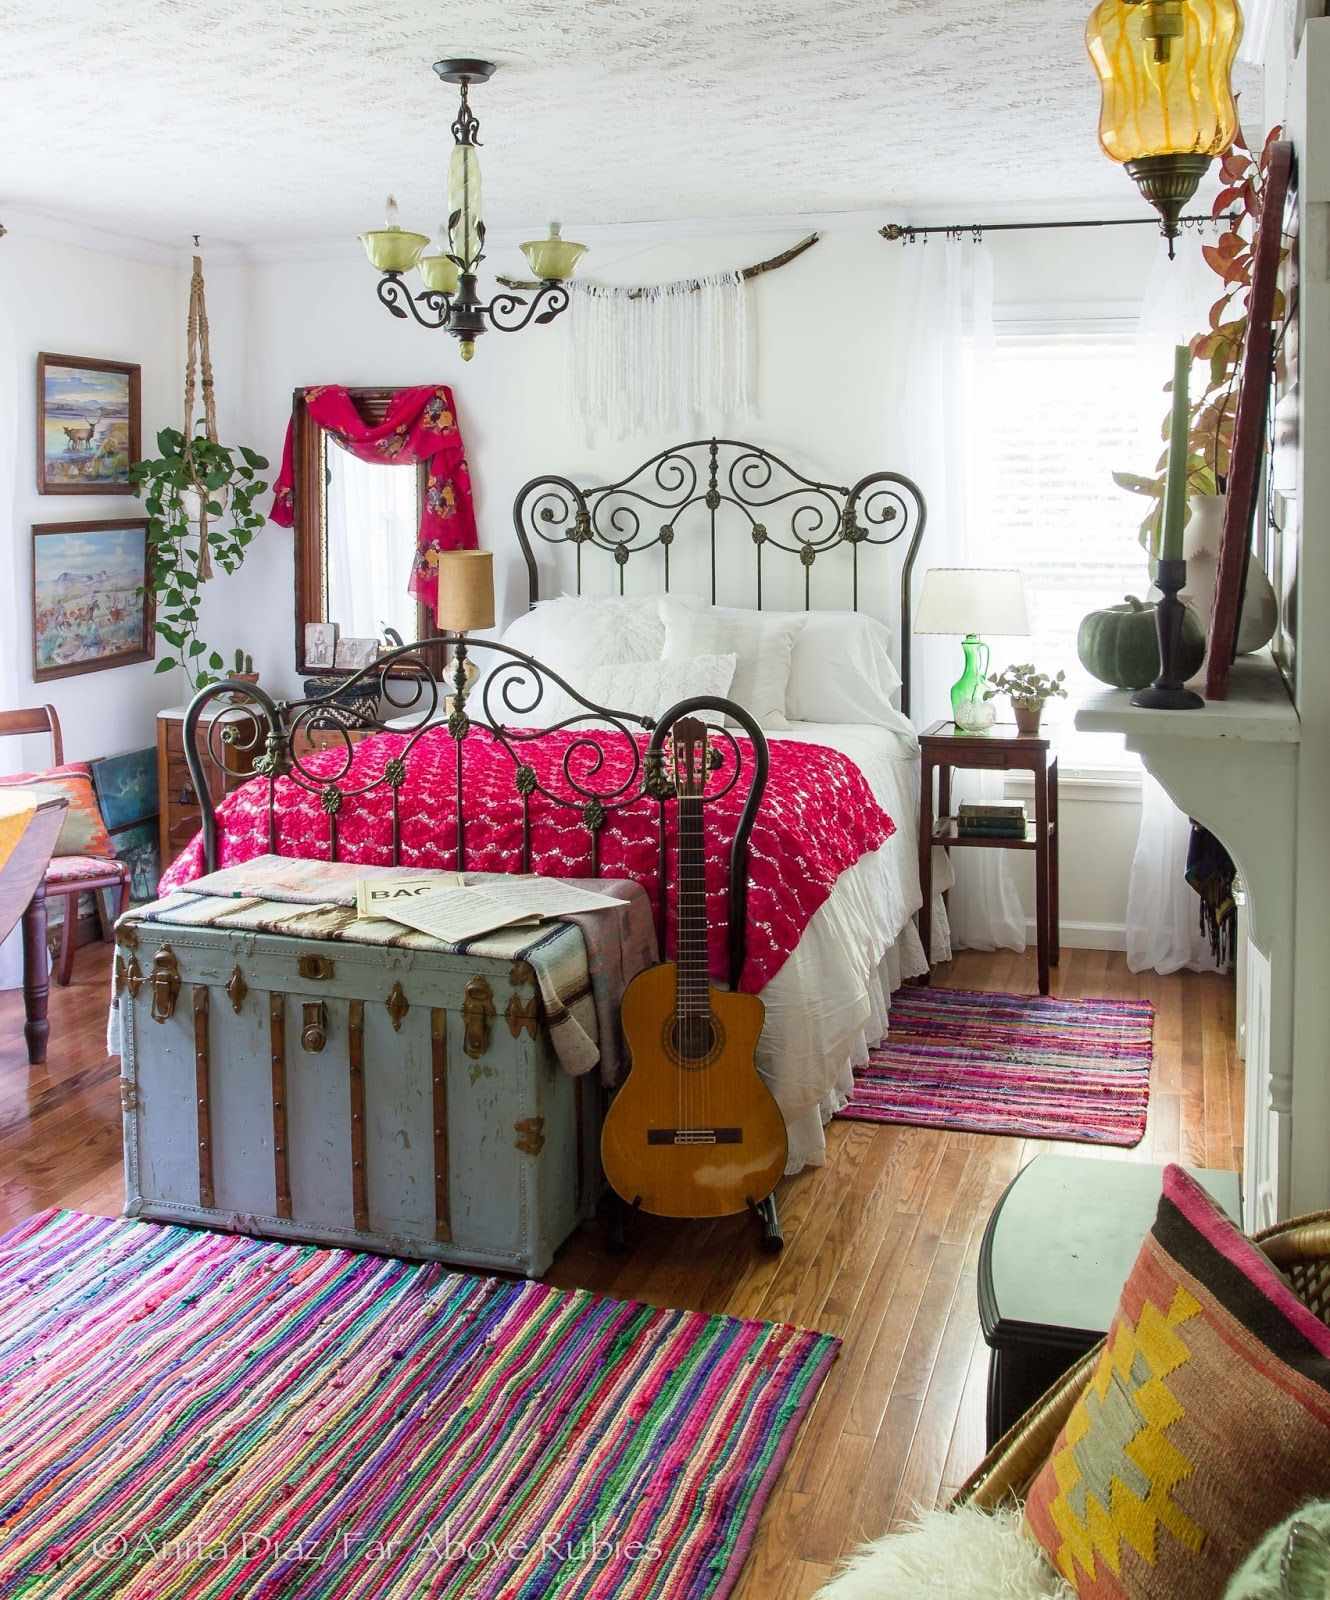 Eclectically Fall Home Tour (With images) Eclectic